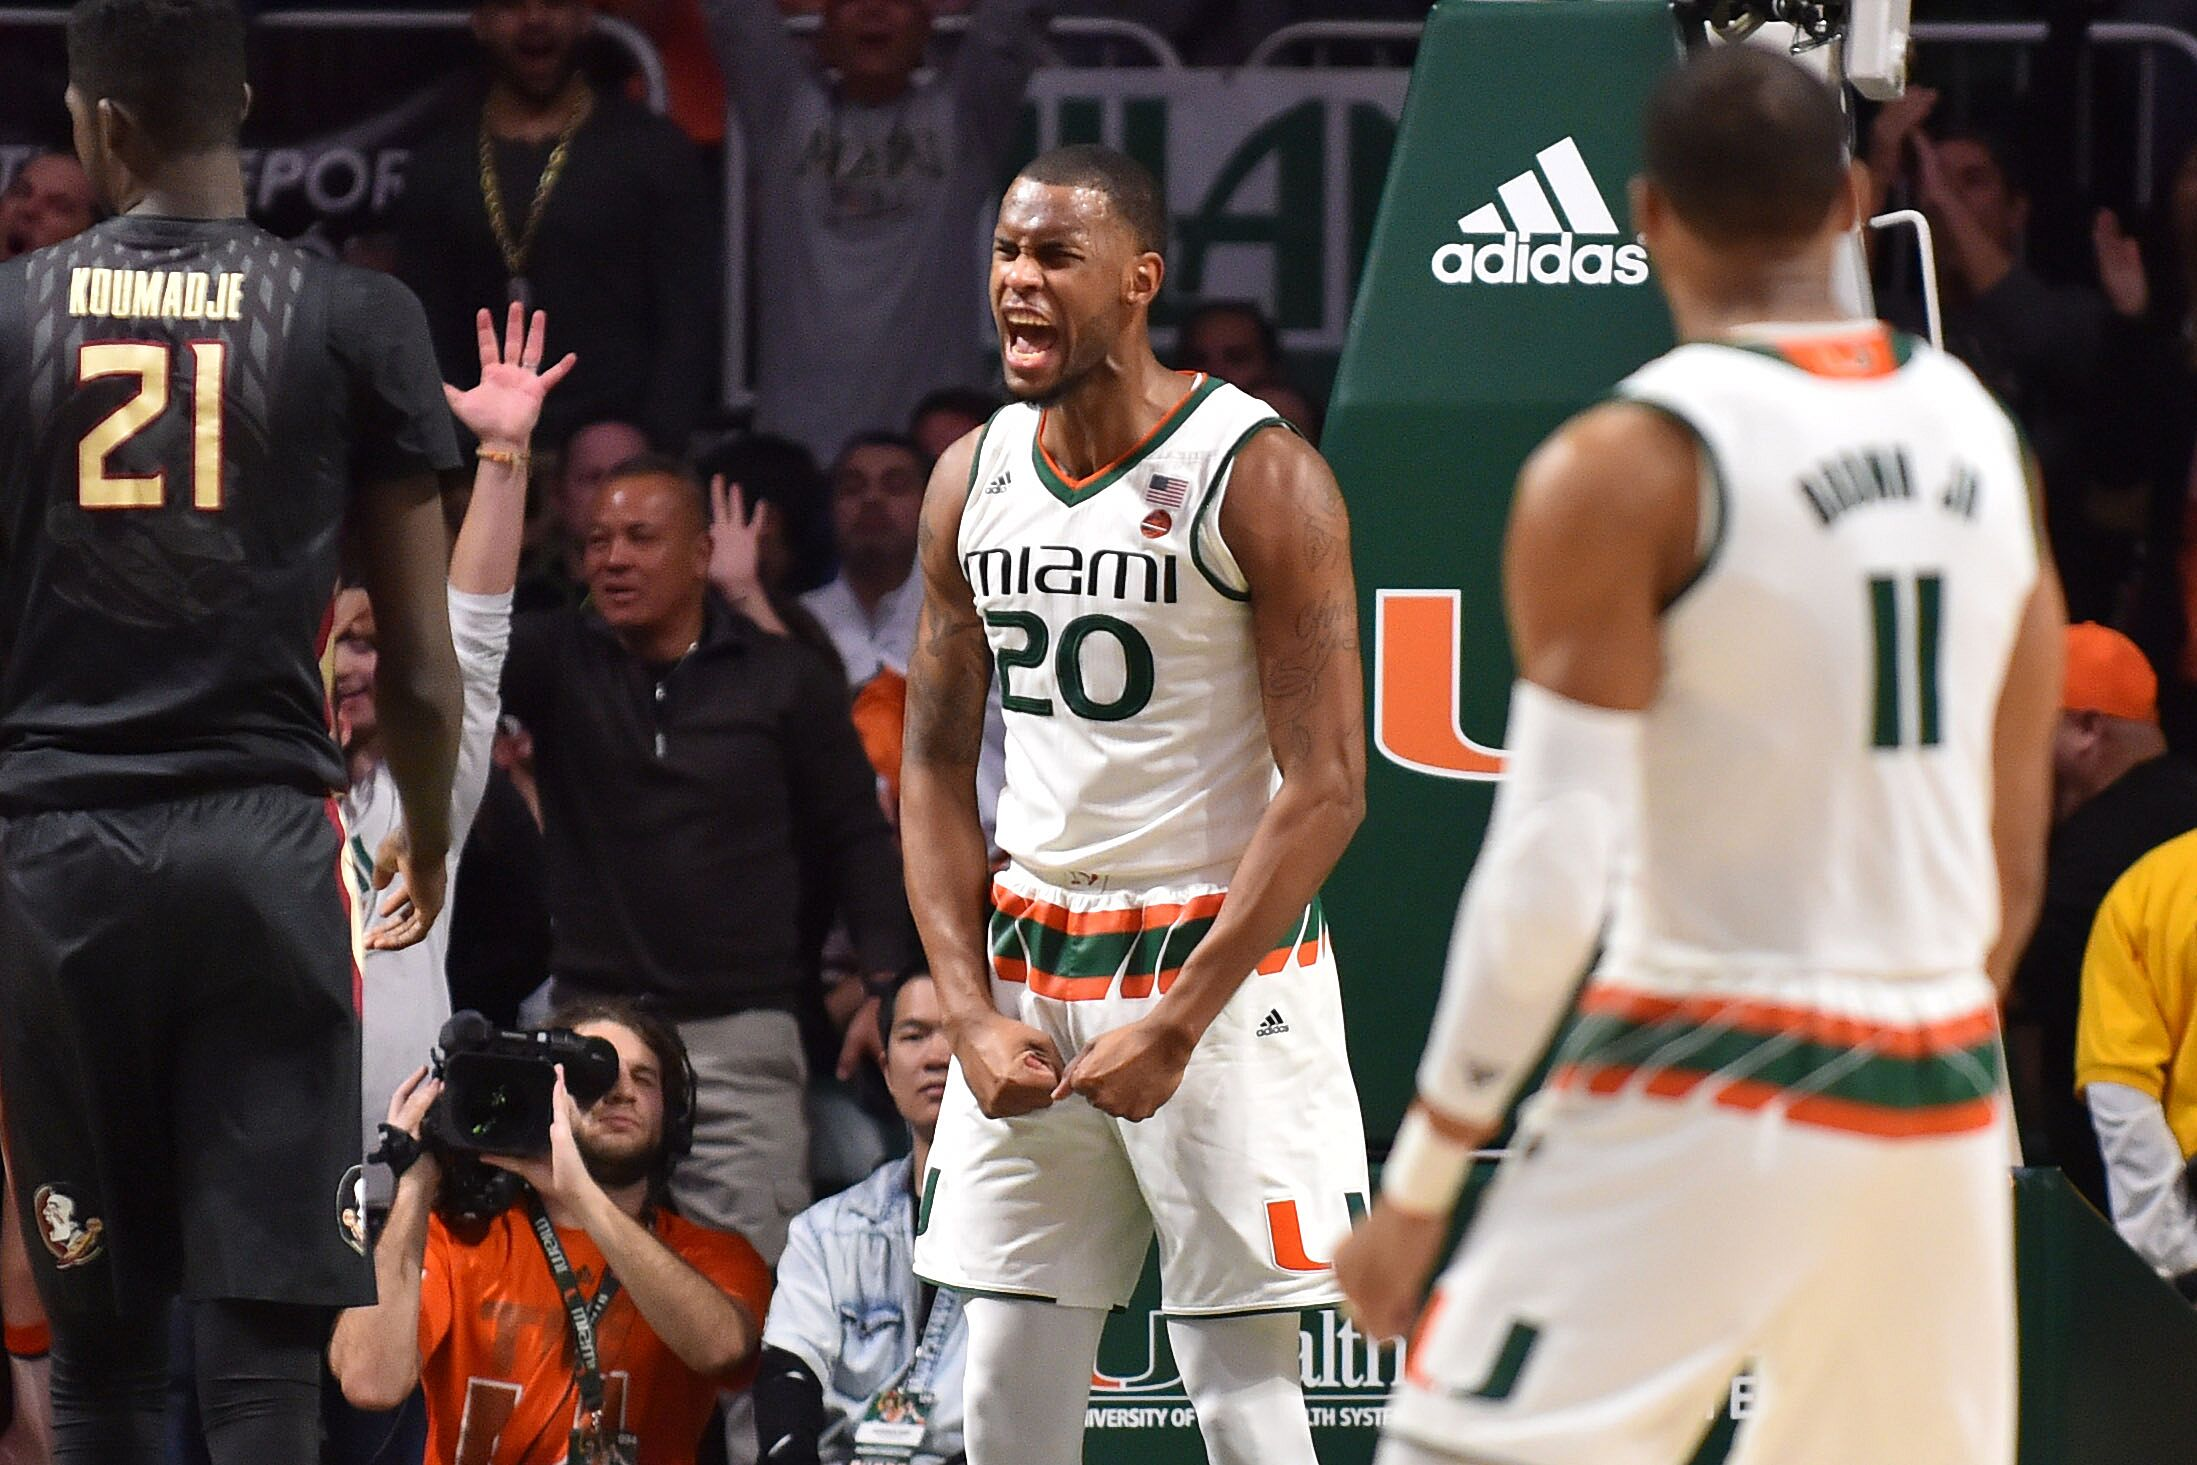 separation shoes 5f9ab cd6a5 Miami Basketball: 2018-19 season preview for the Hurricanes